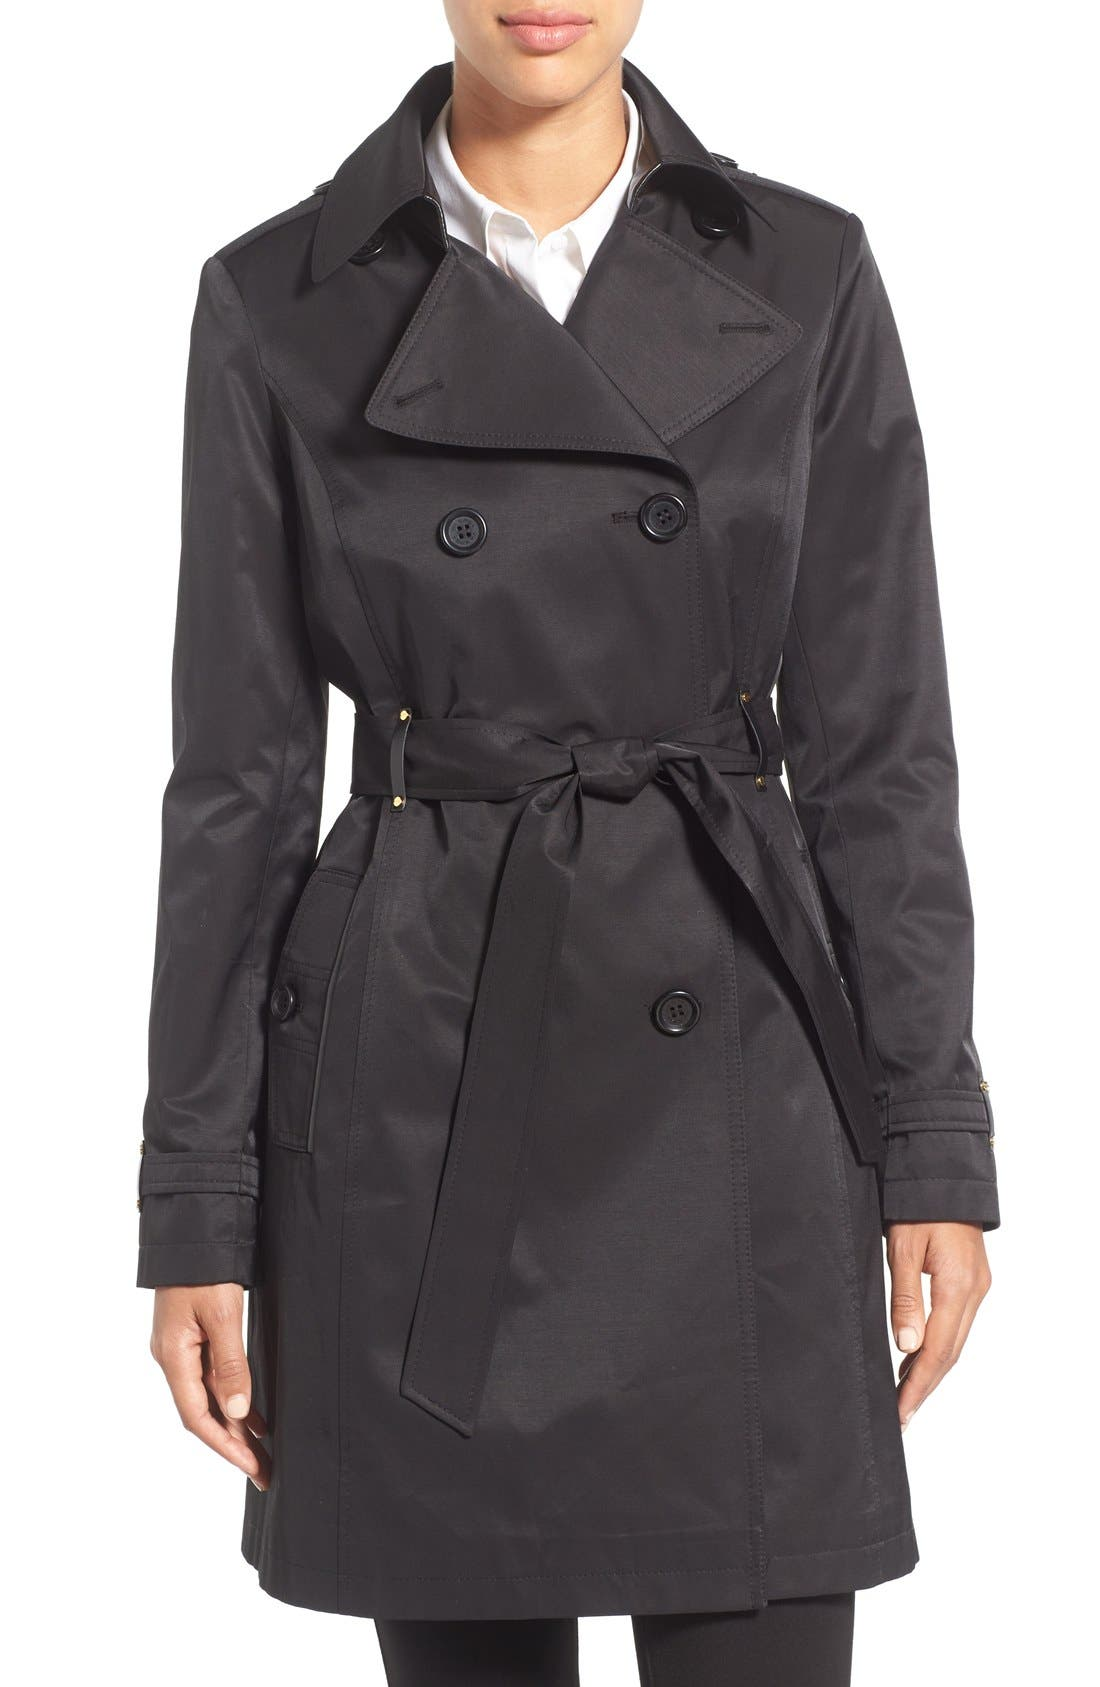 Alternate Image 1 Selected - Via Spiga Double Breasted Trench with Faux Leather Trim